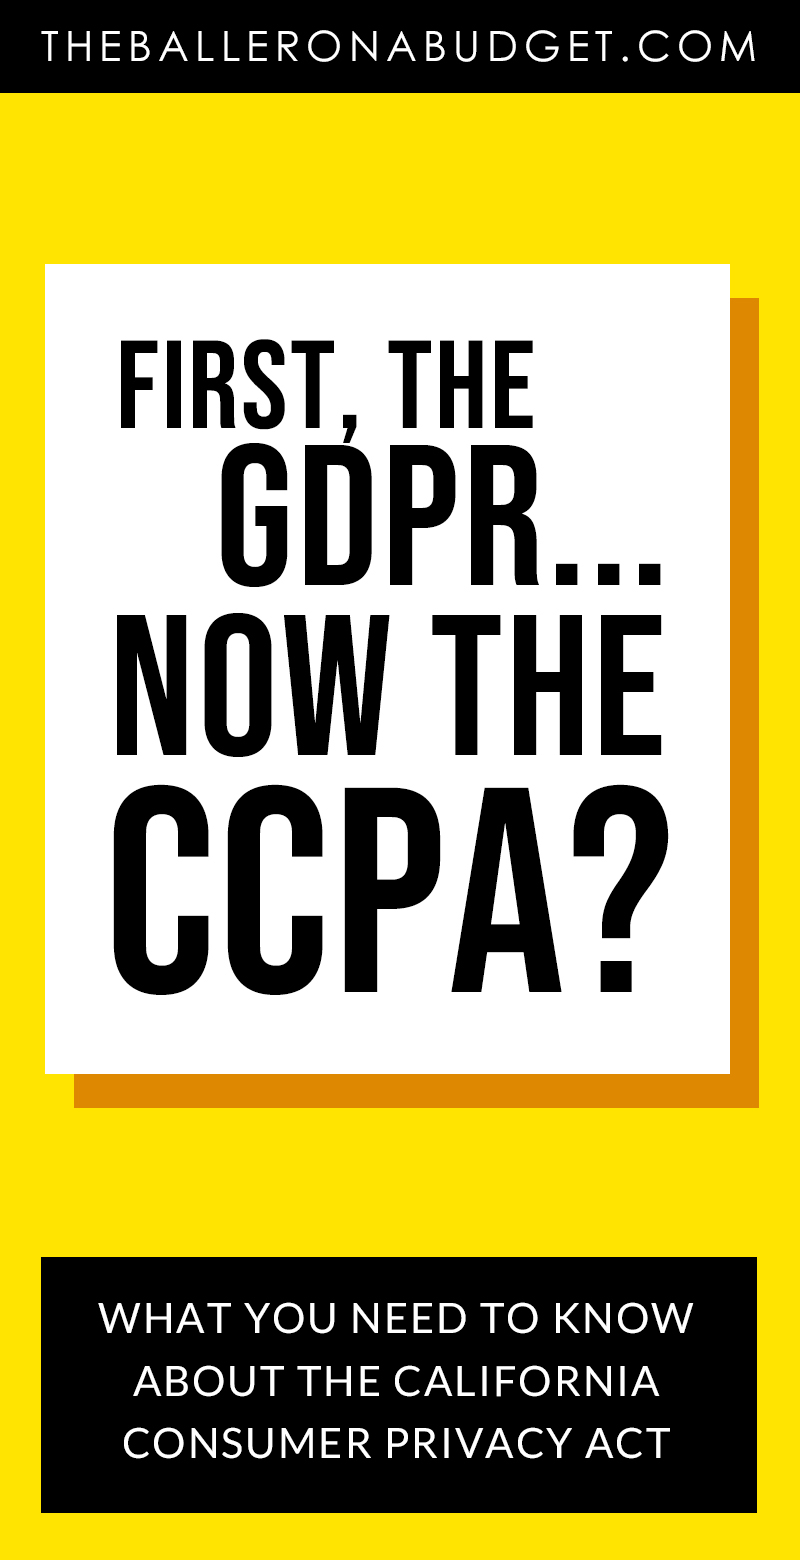 Remember the GDPR? Now we have to worry about the CCPA. If the California Consumer Privacy Act goes unfixed, online businesses (including bloggers) will be subject to hefty fines and unreasonable rules for compliance. Here's what you need to know. - www.theballeronabudget.com